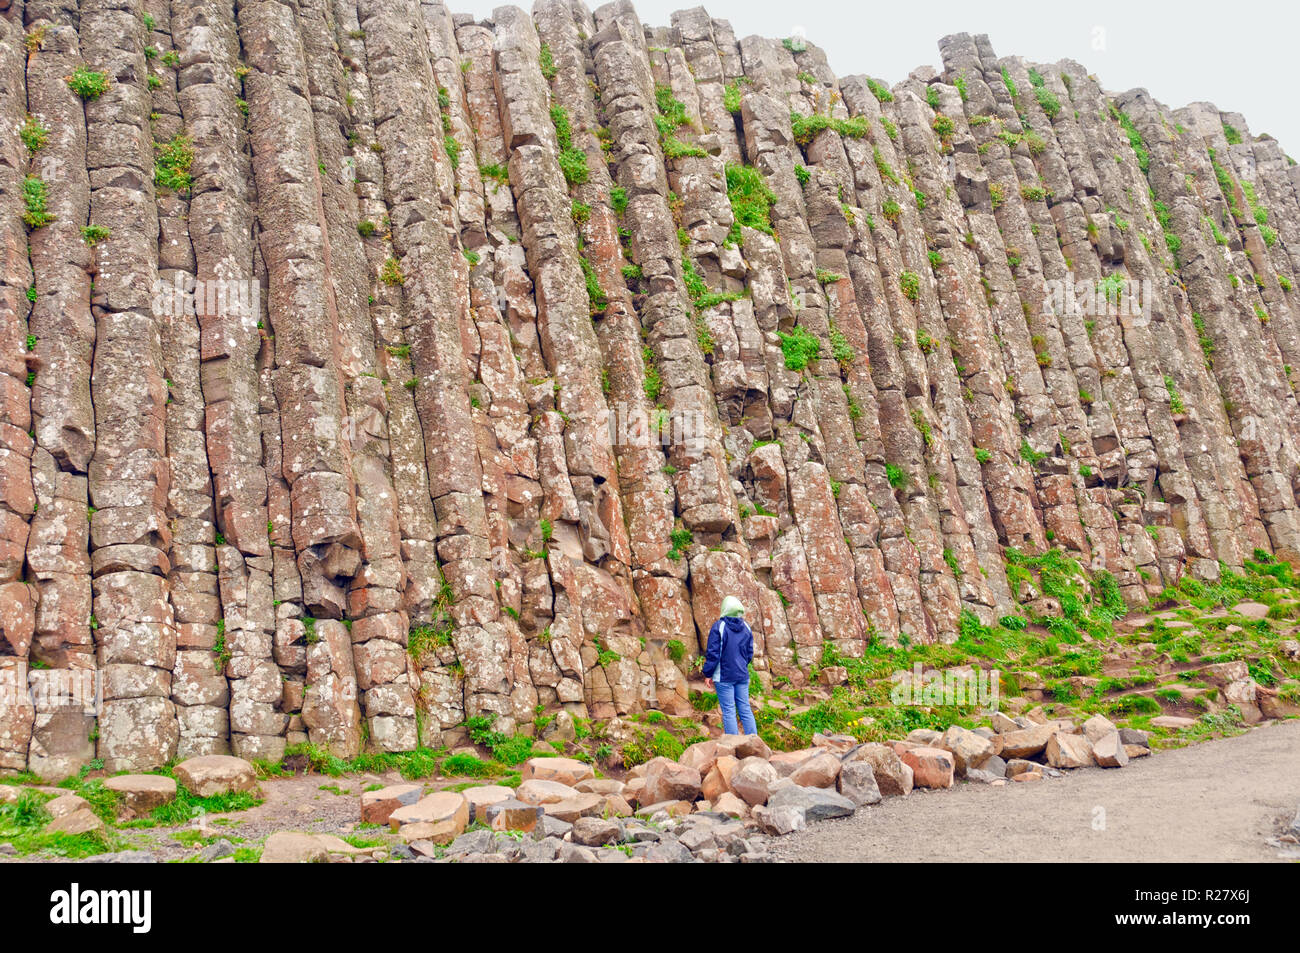 Person looking up at one wall of the Giant's Causeway in Northern Ireland - Stock Image